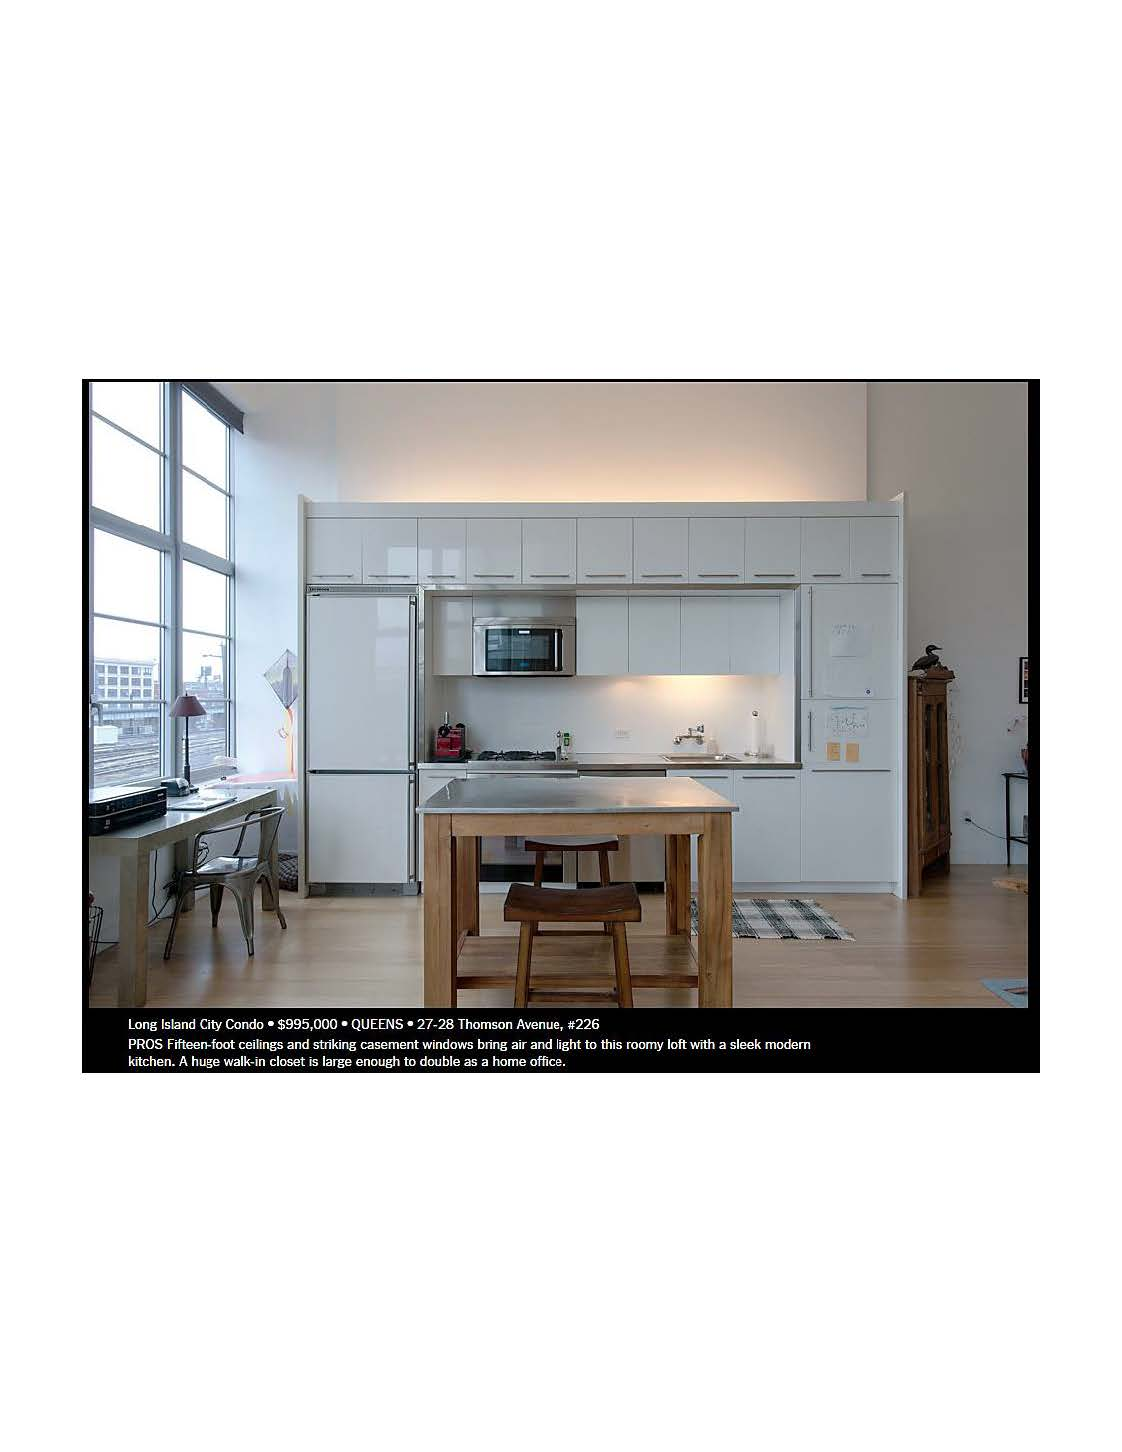 NYTimes.com - Homes for Sale in Brooklyn and Queens 3.18.16 (1)_Page_3